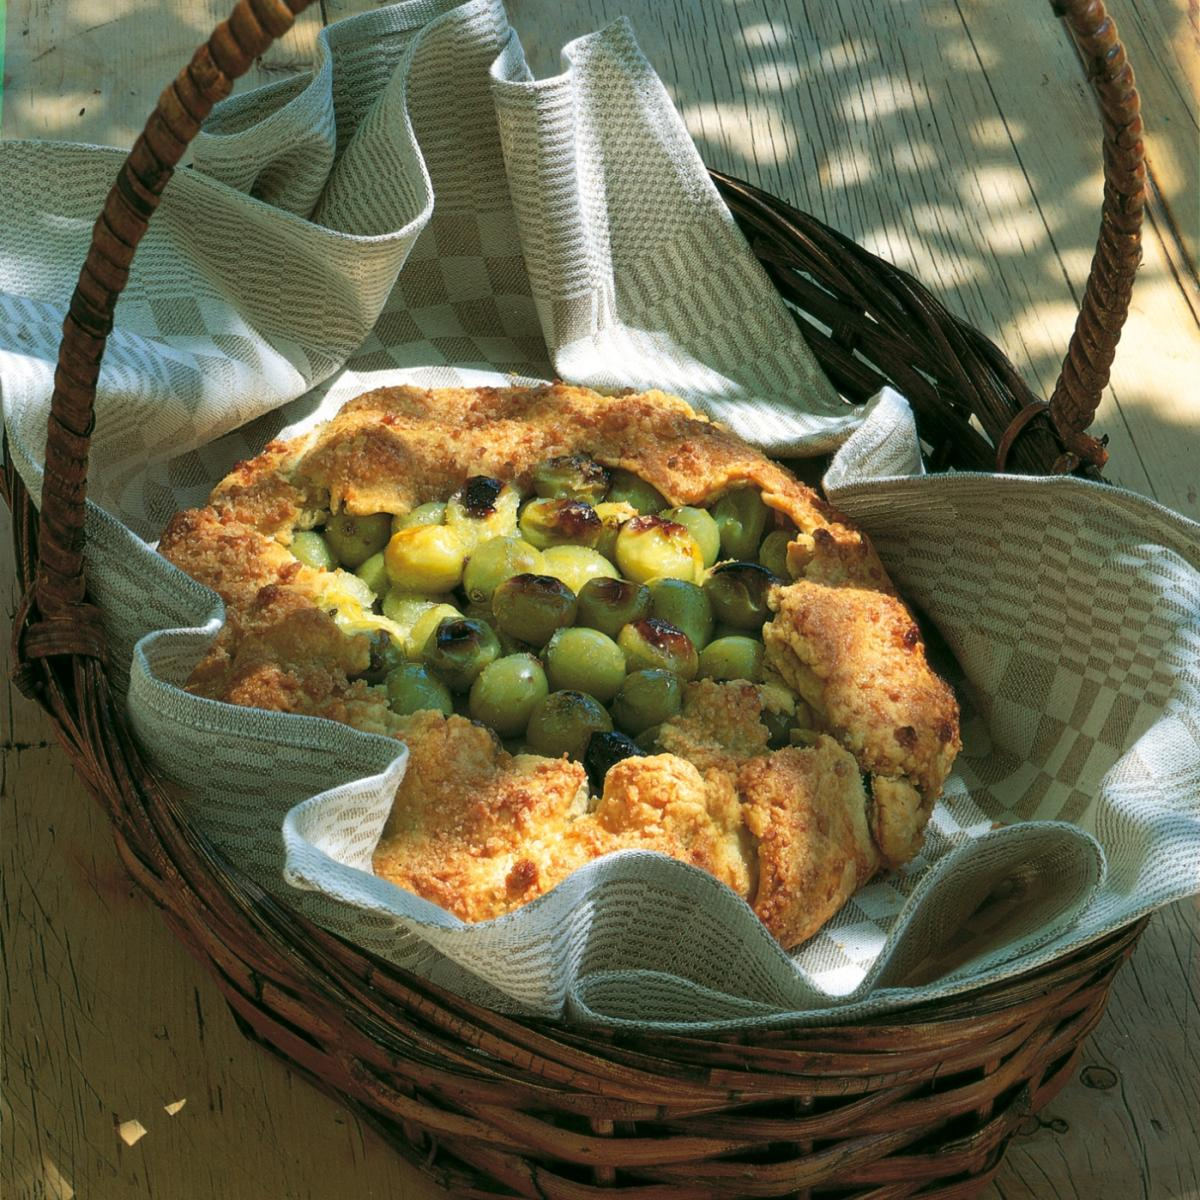 A picture of Delia's A Very Easy One-crust Gooseberry Pie recipe